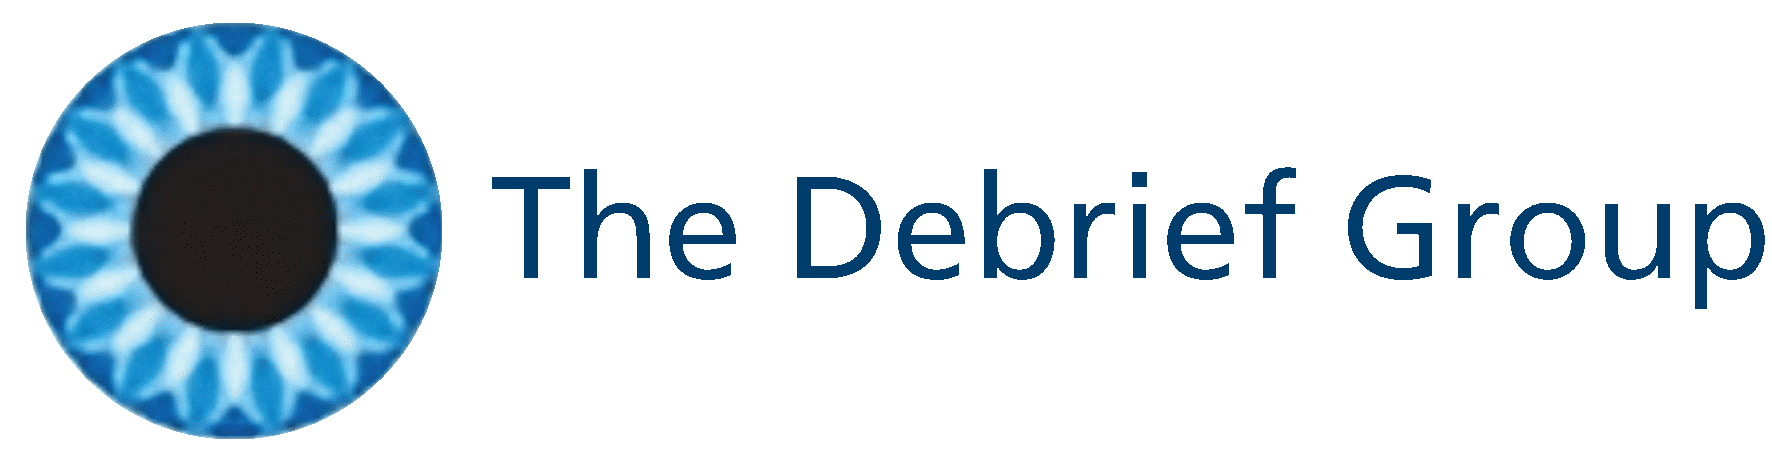 The Debrief Group - Whistleblowing Partner